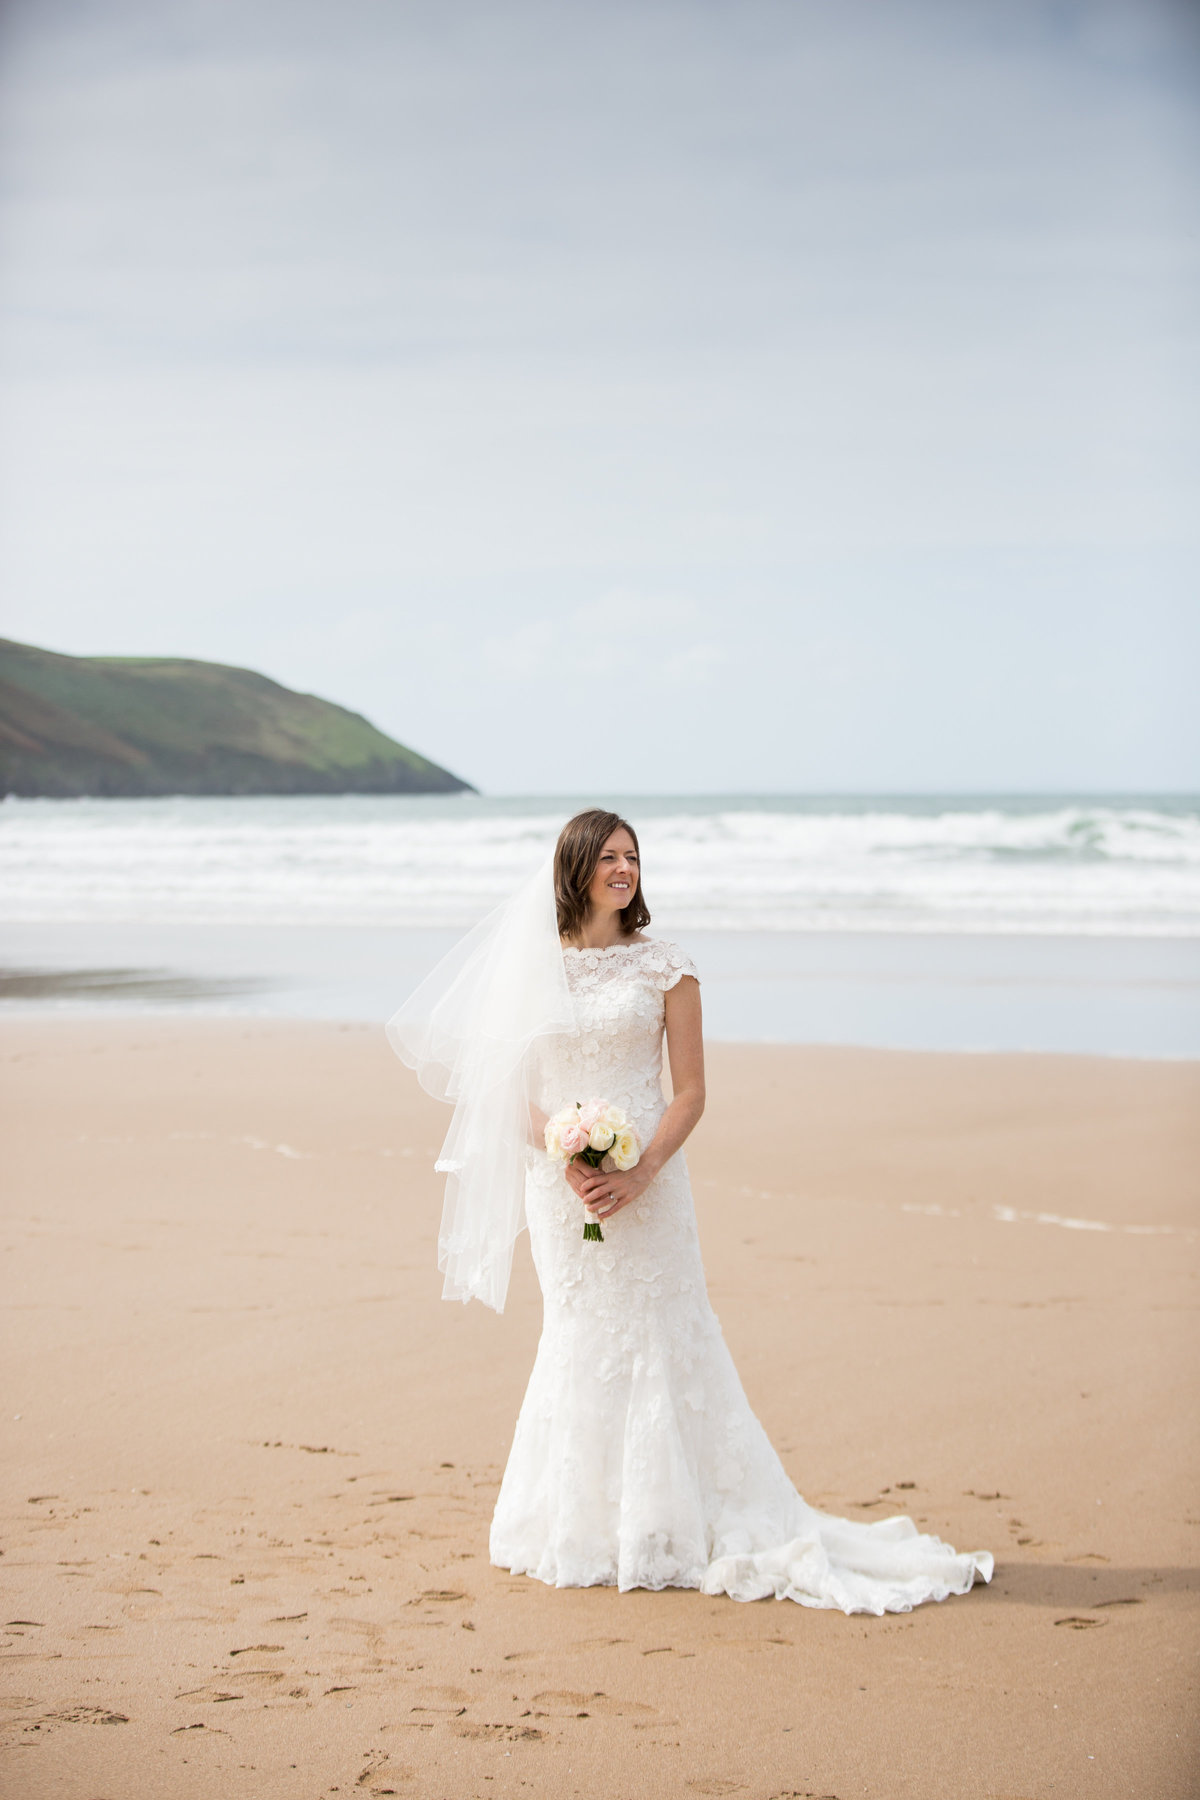 bride on beach colour photography reportage devon